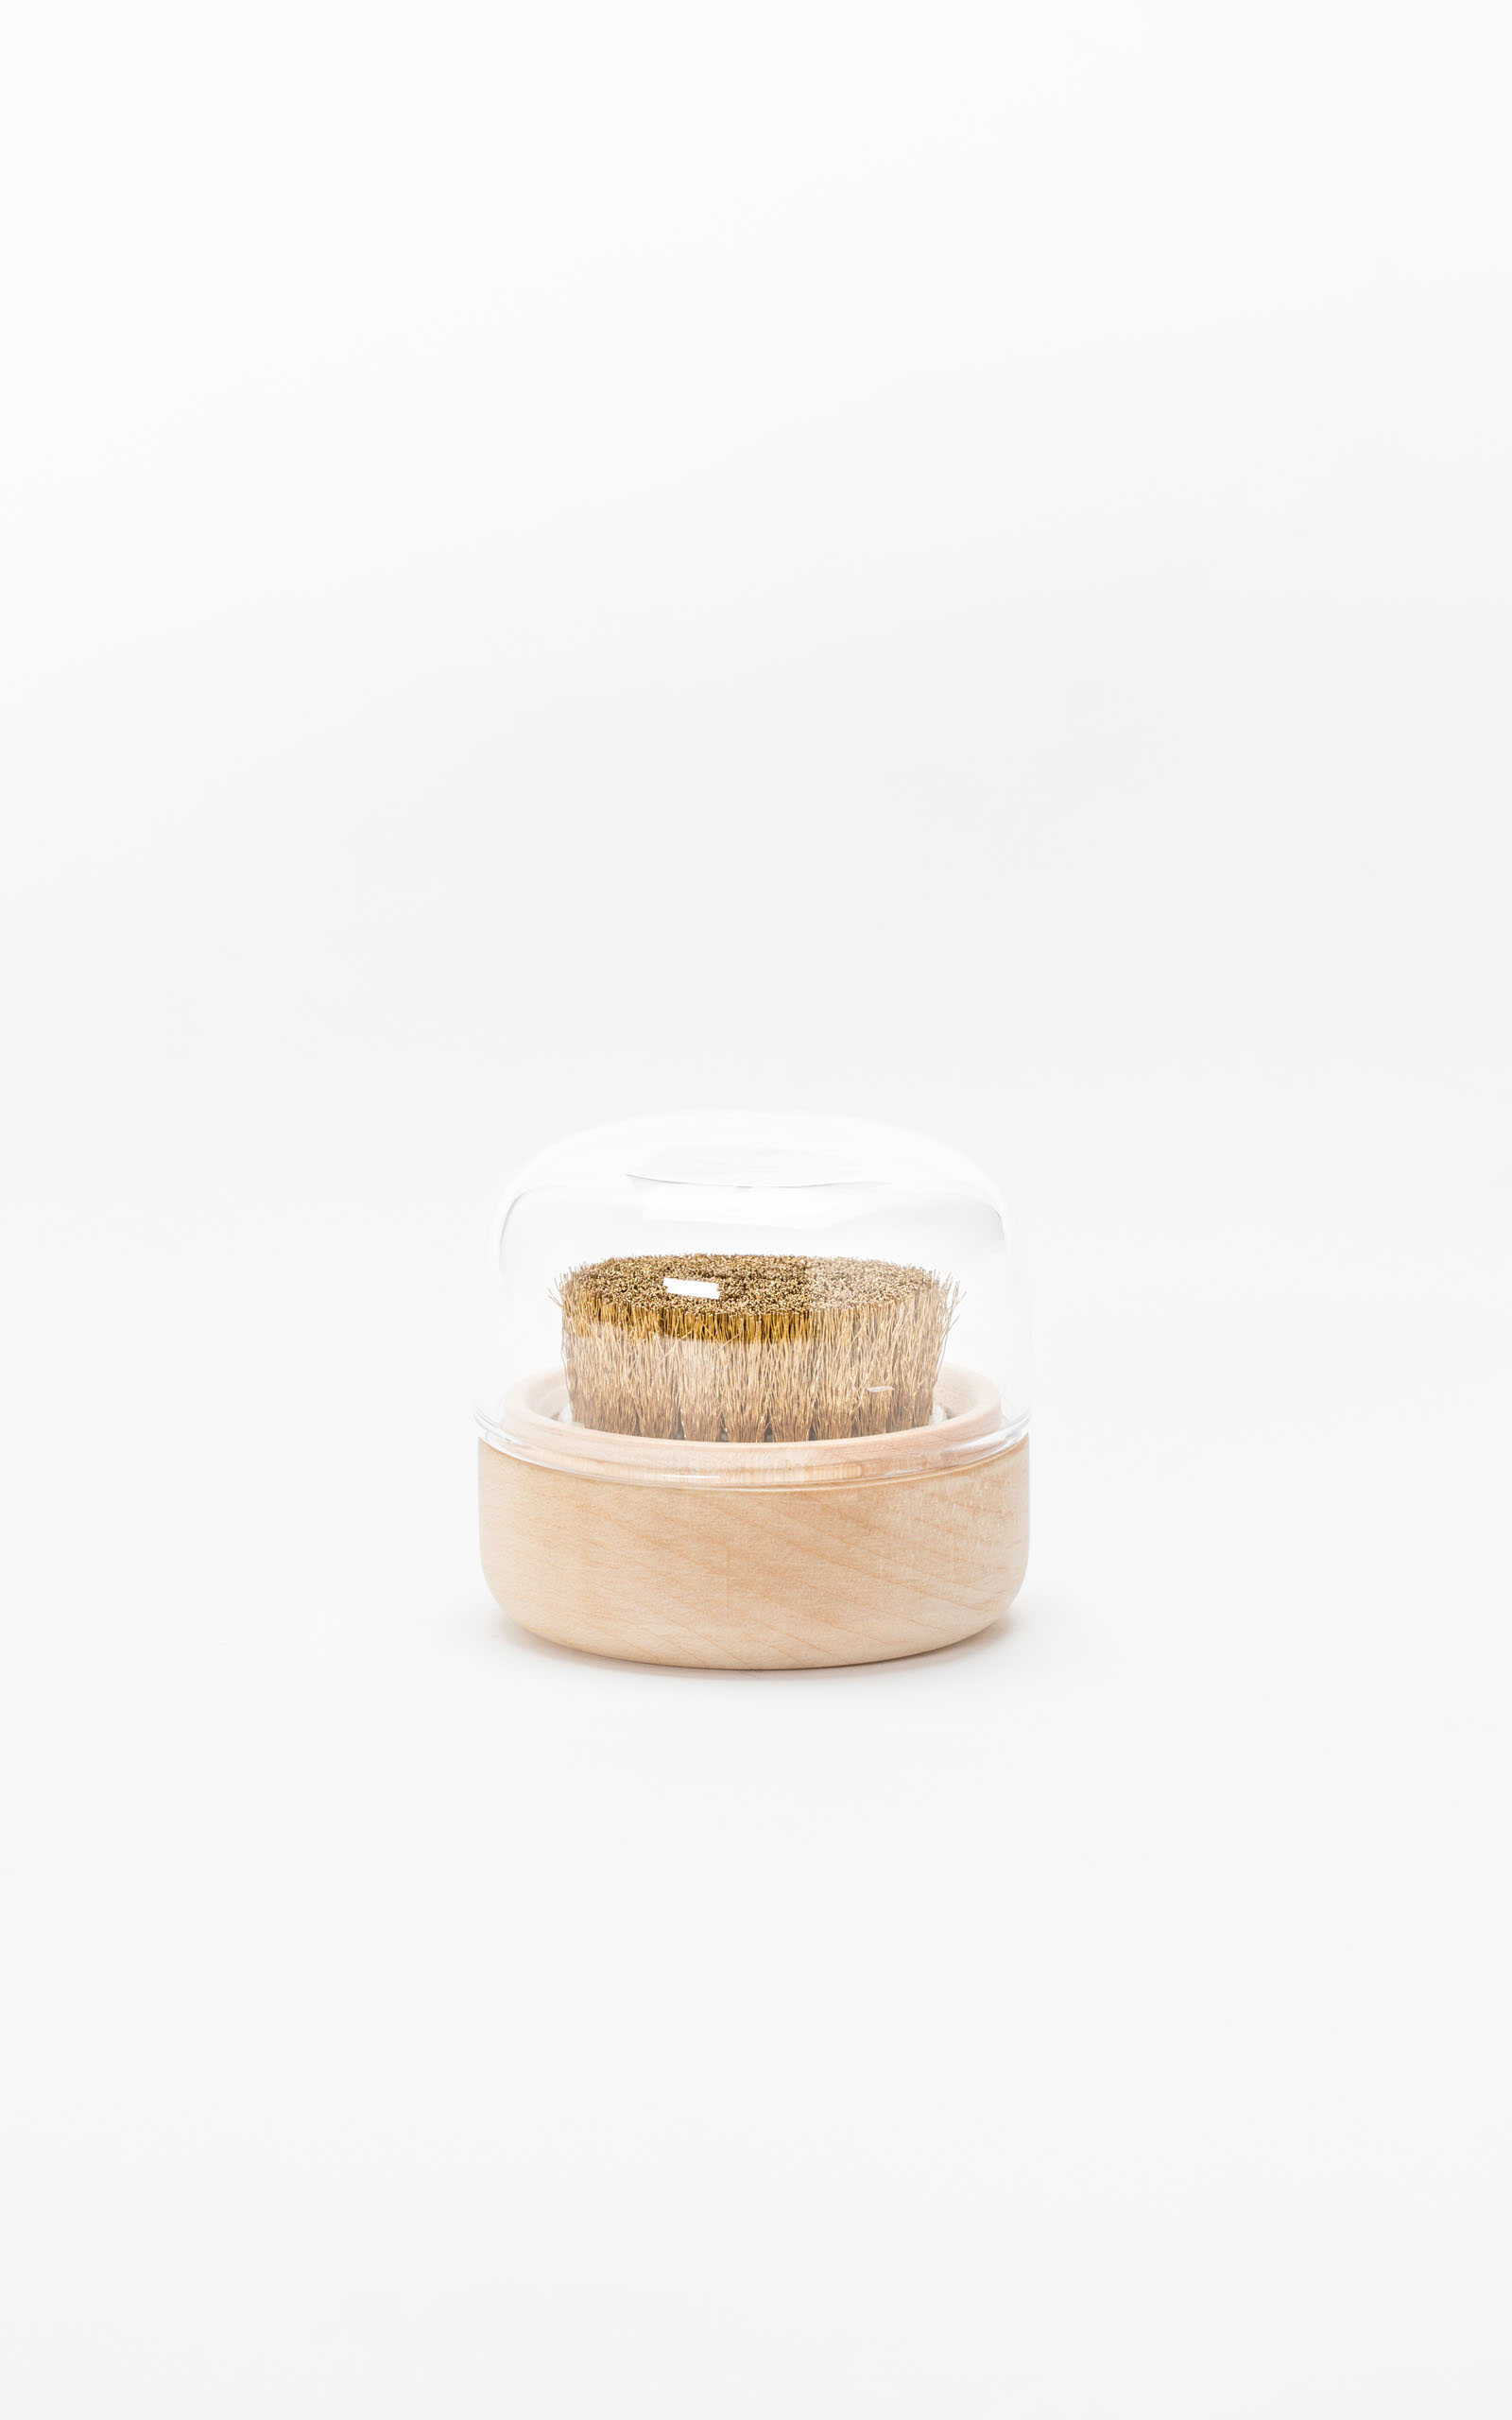 A clothing brush with a minimalistic glass top in front of a white backdrop.